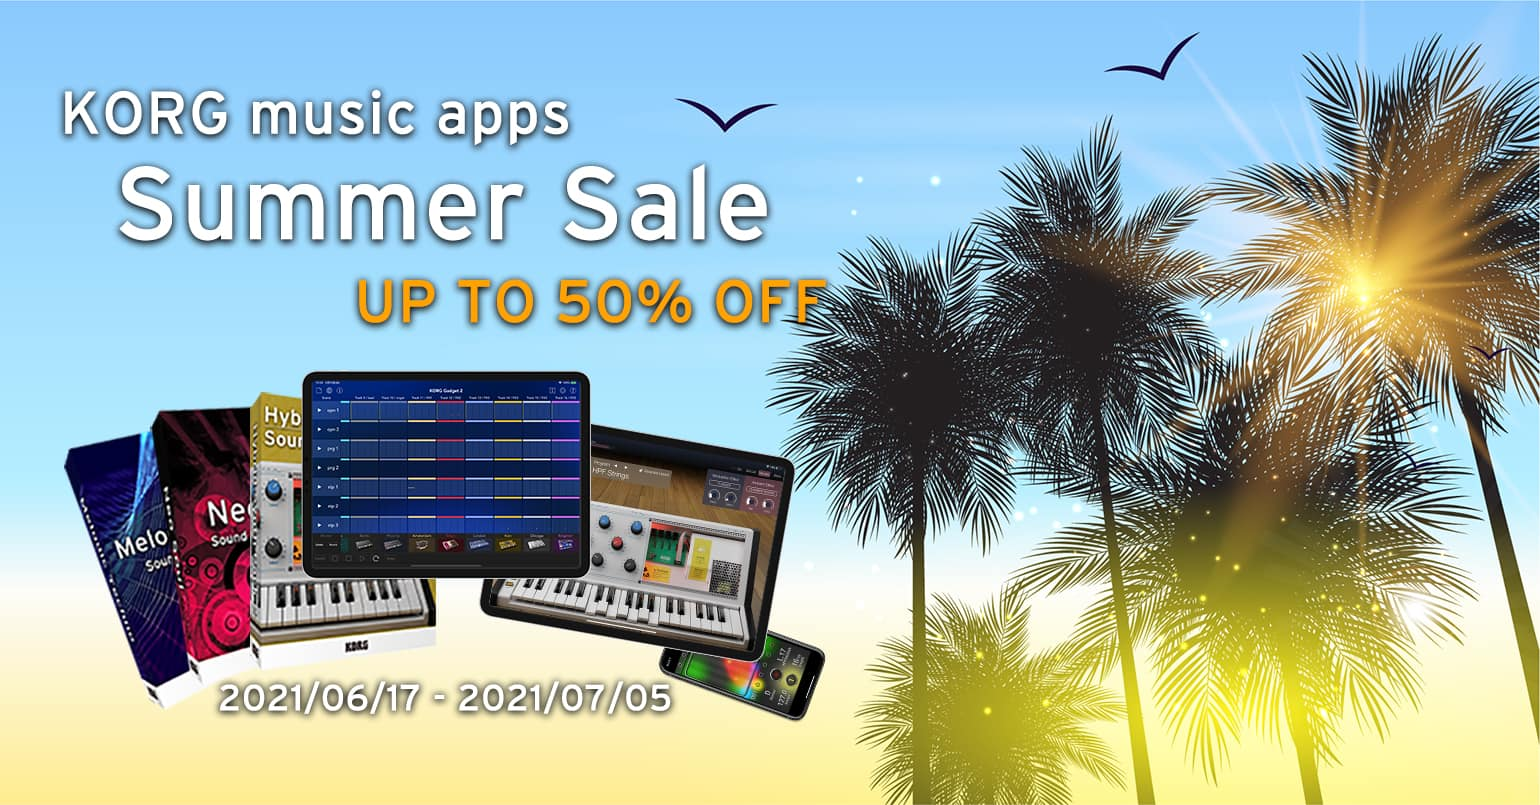 KORG music apps iOS/iPad/Android 50% Off until July 5th!